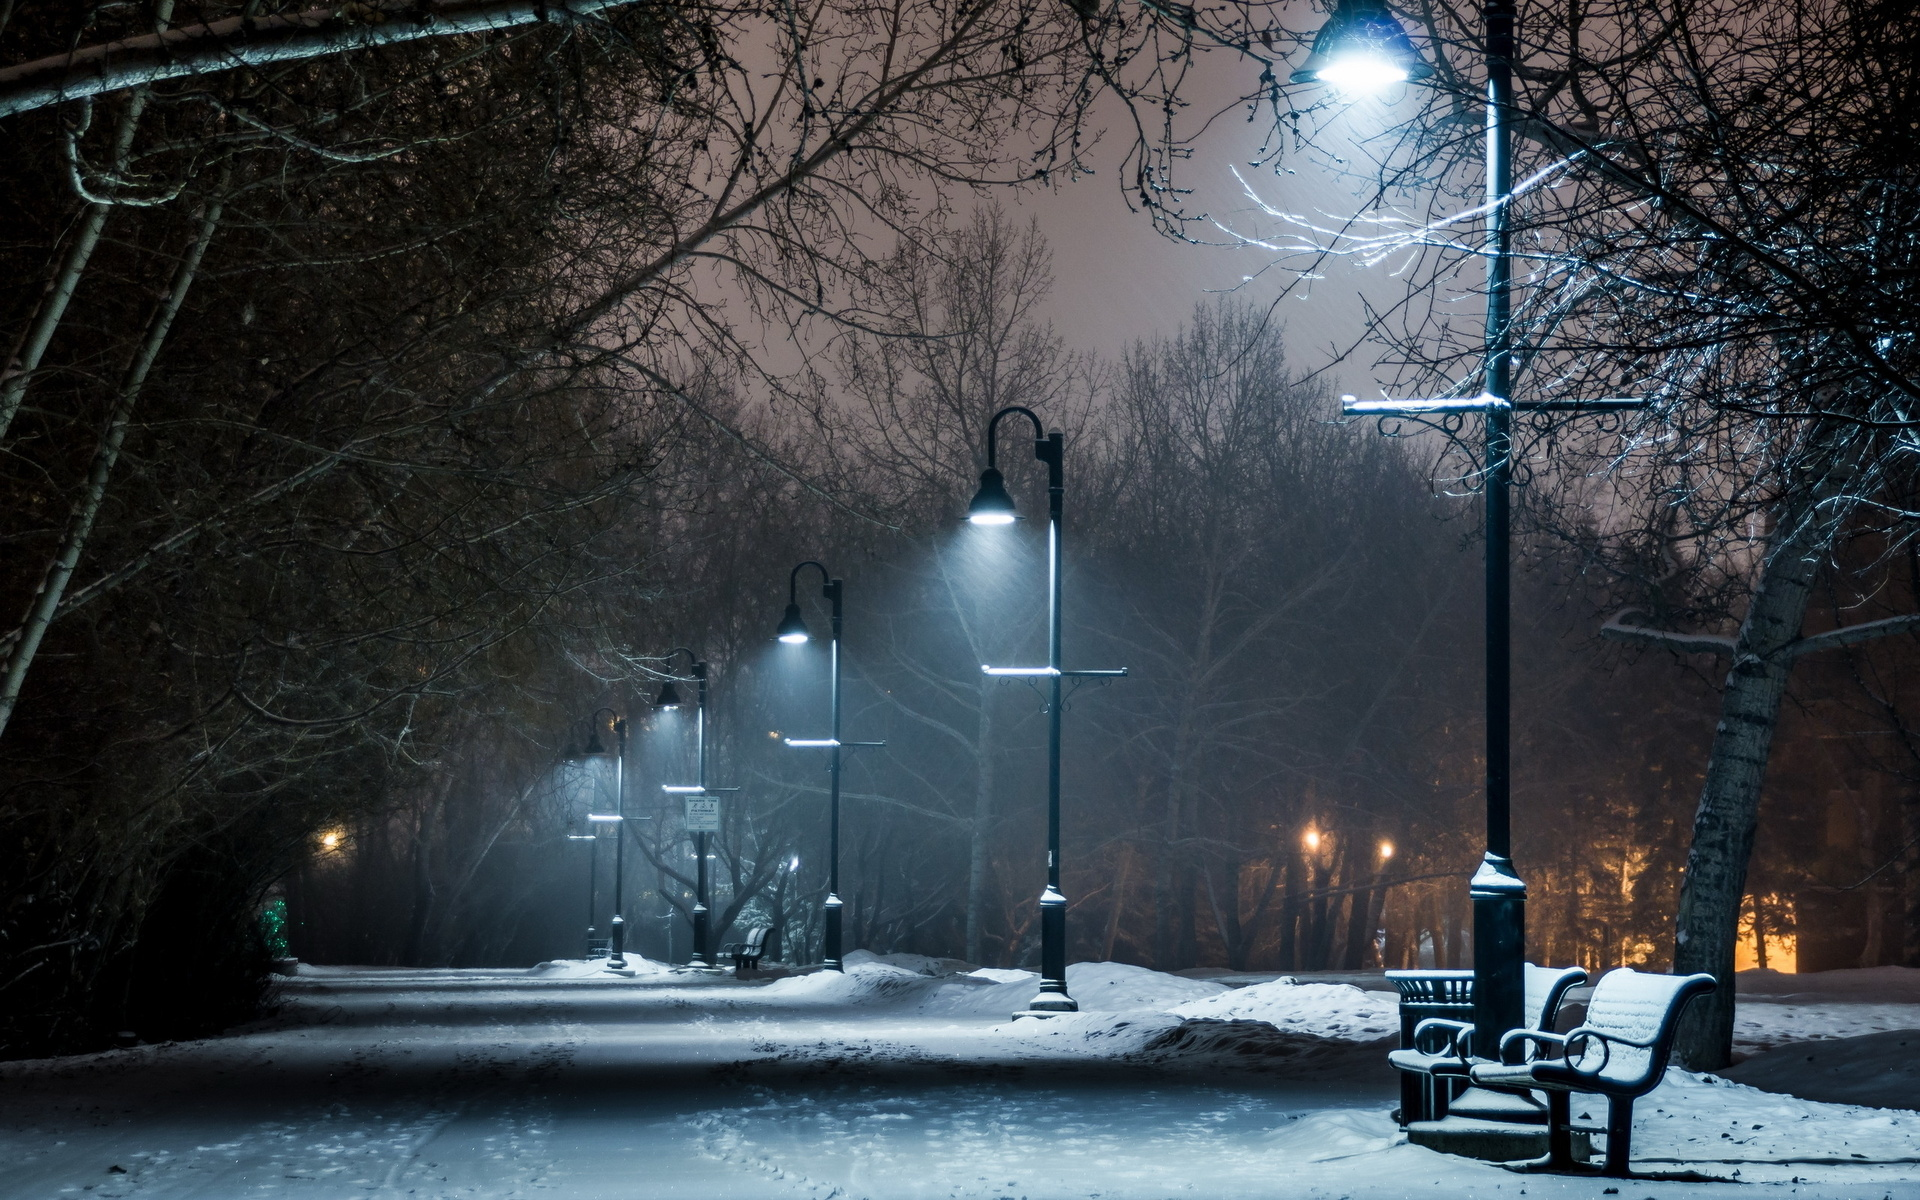 lamp post night path trail wallpaper 1920x1200 46701 WallpaperUP 1920x1200